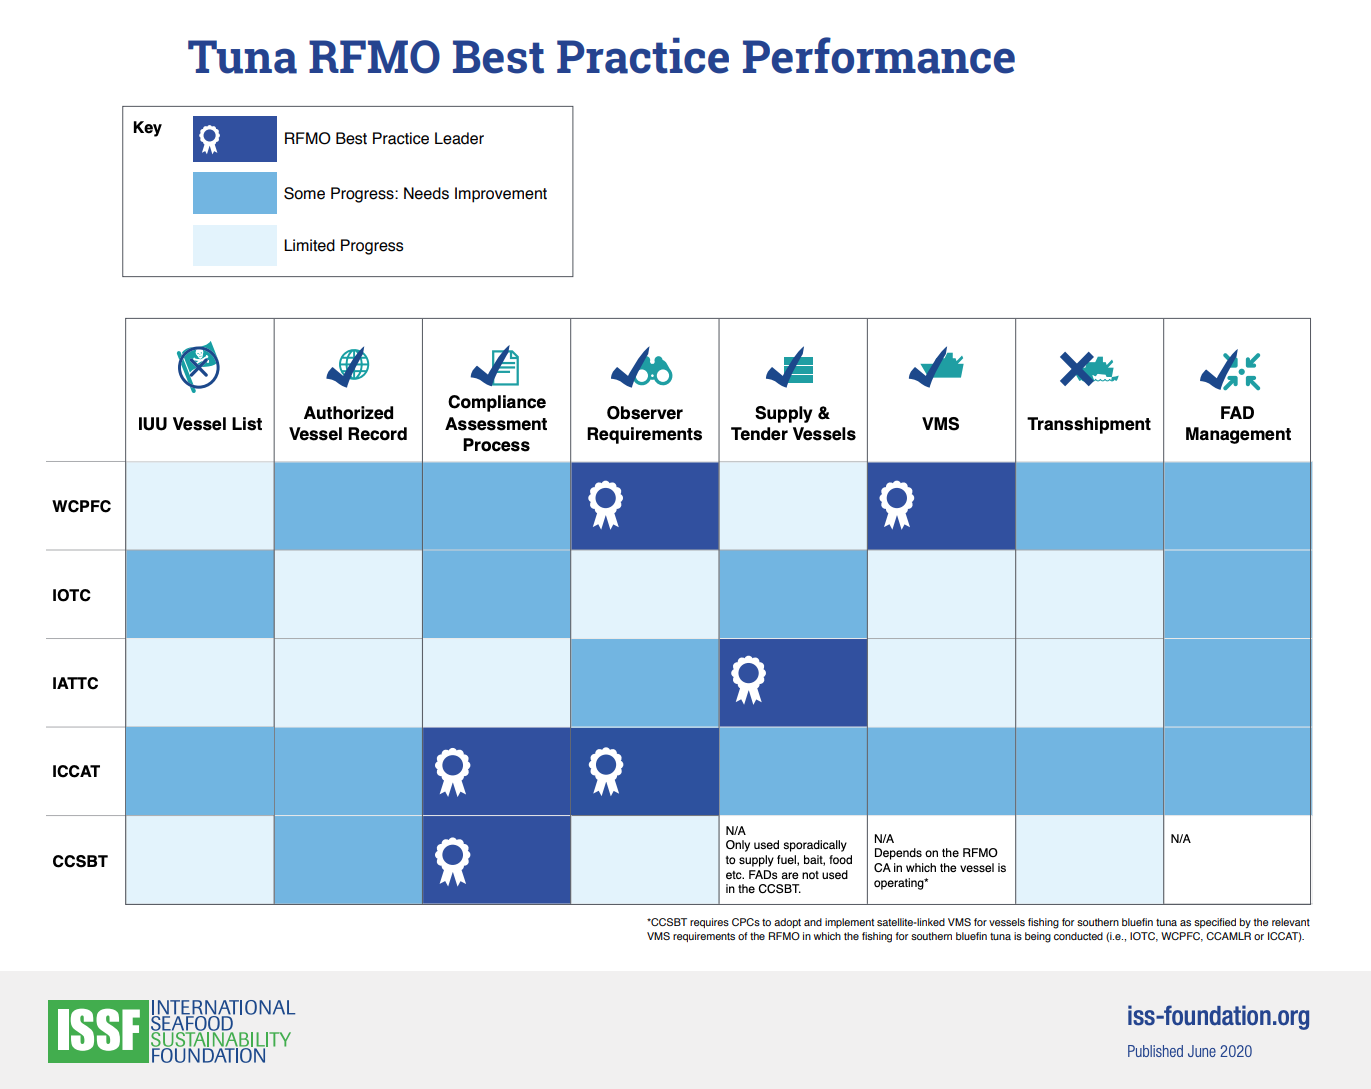 RFMO Best Practice Performance